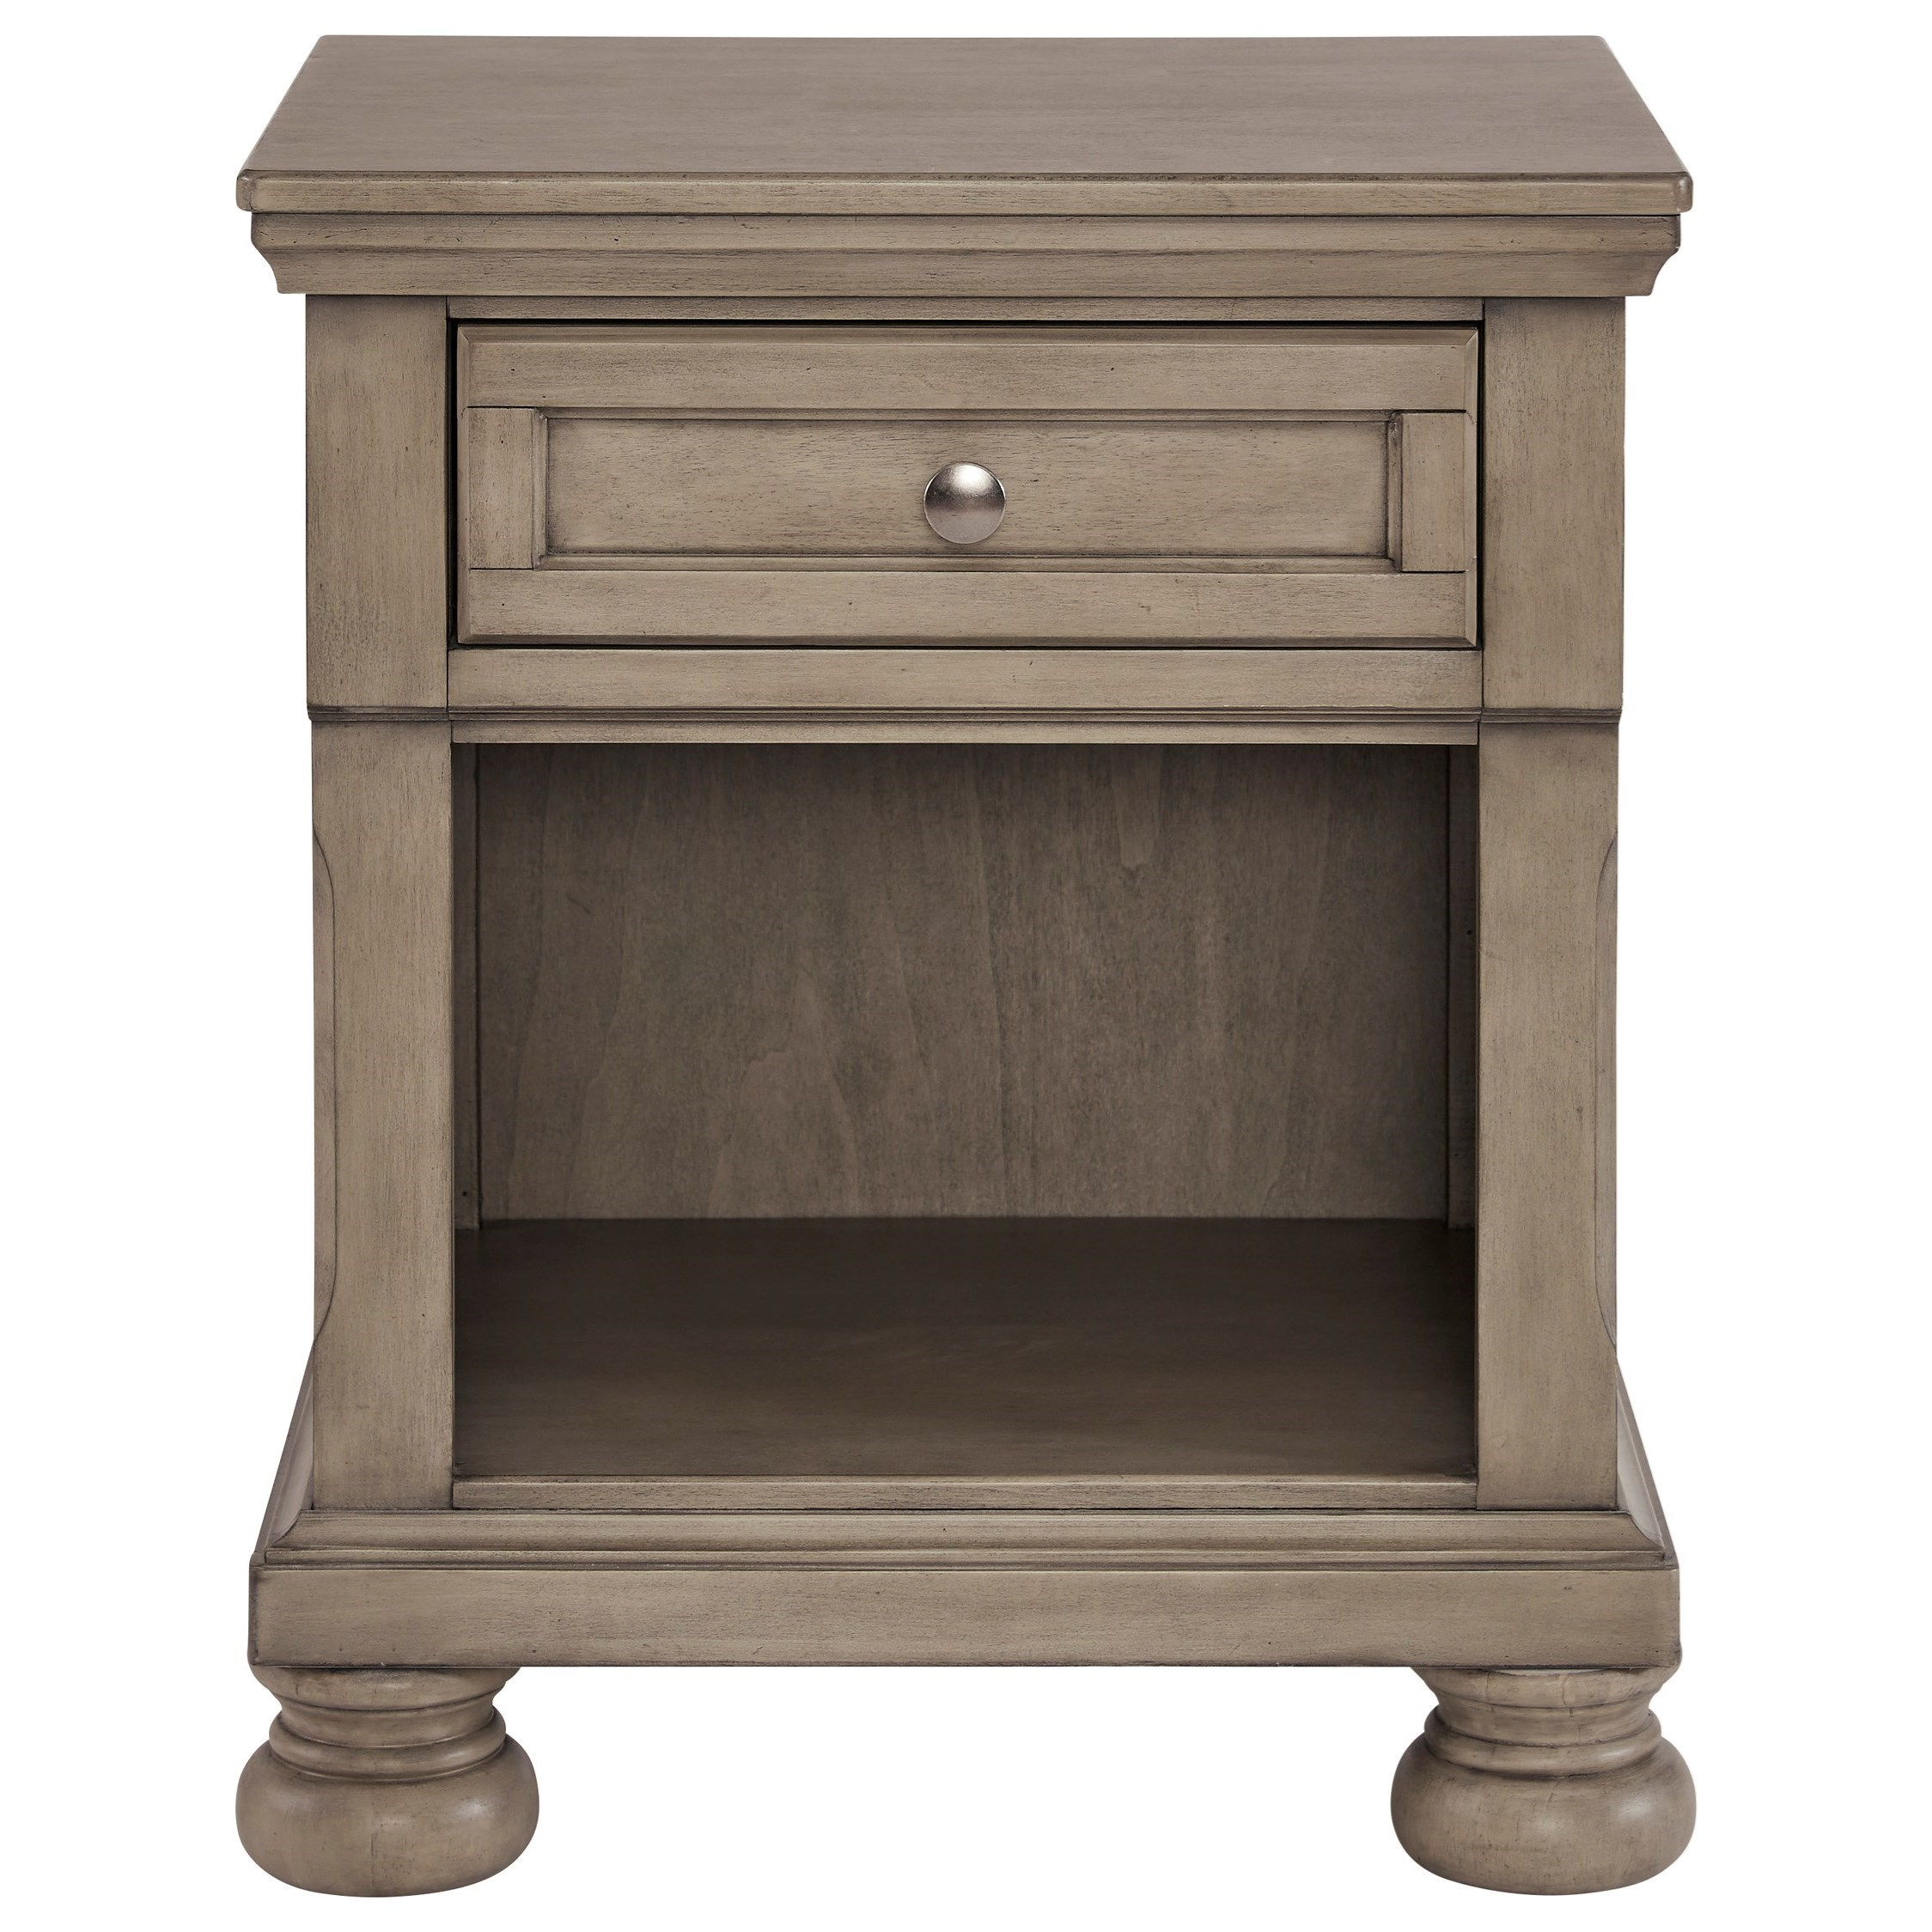 Lettner 1-Drawer Nightstand by Signature Design by Ashley at Beck's Furniture